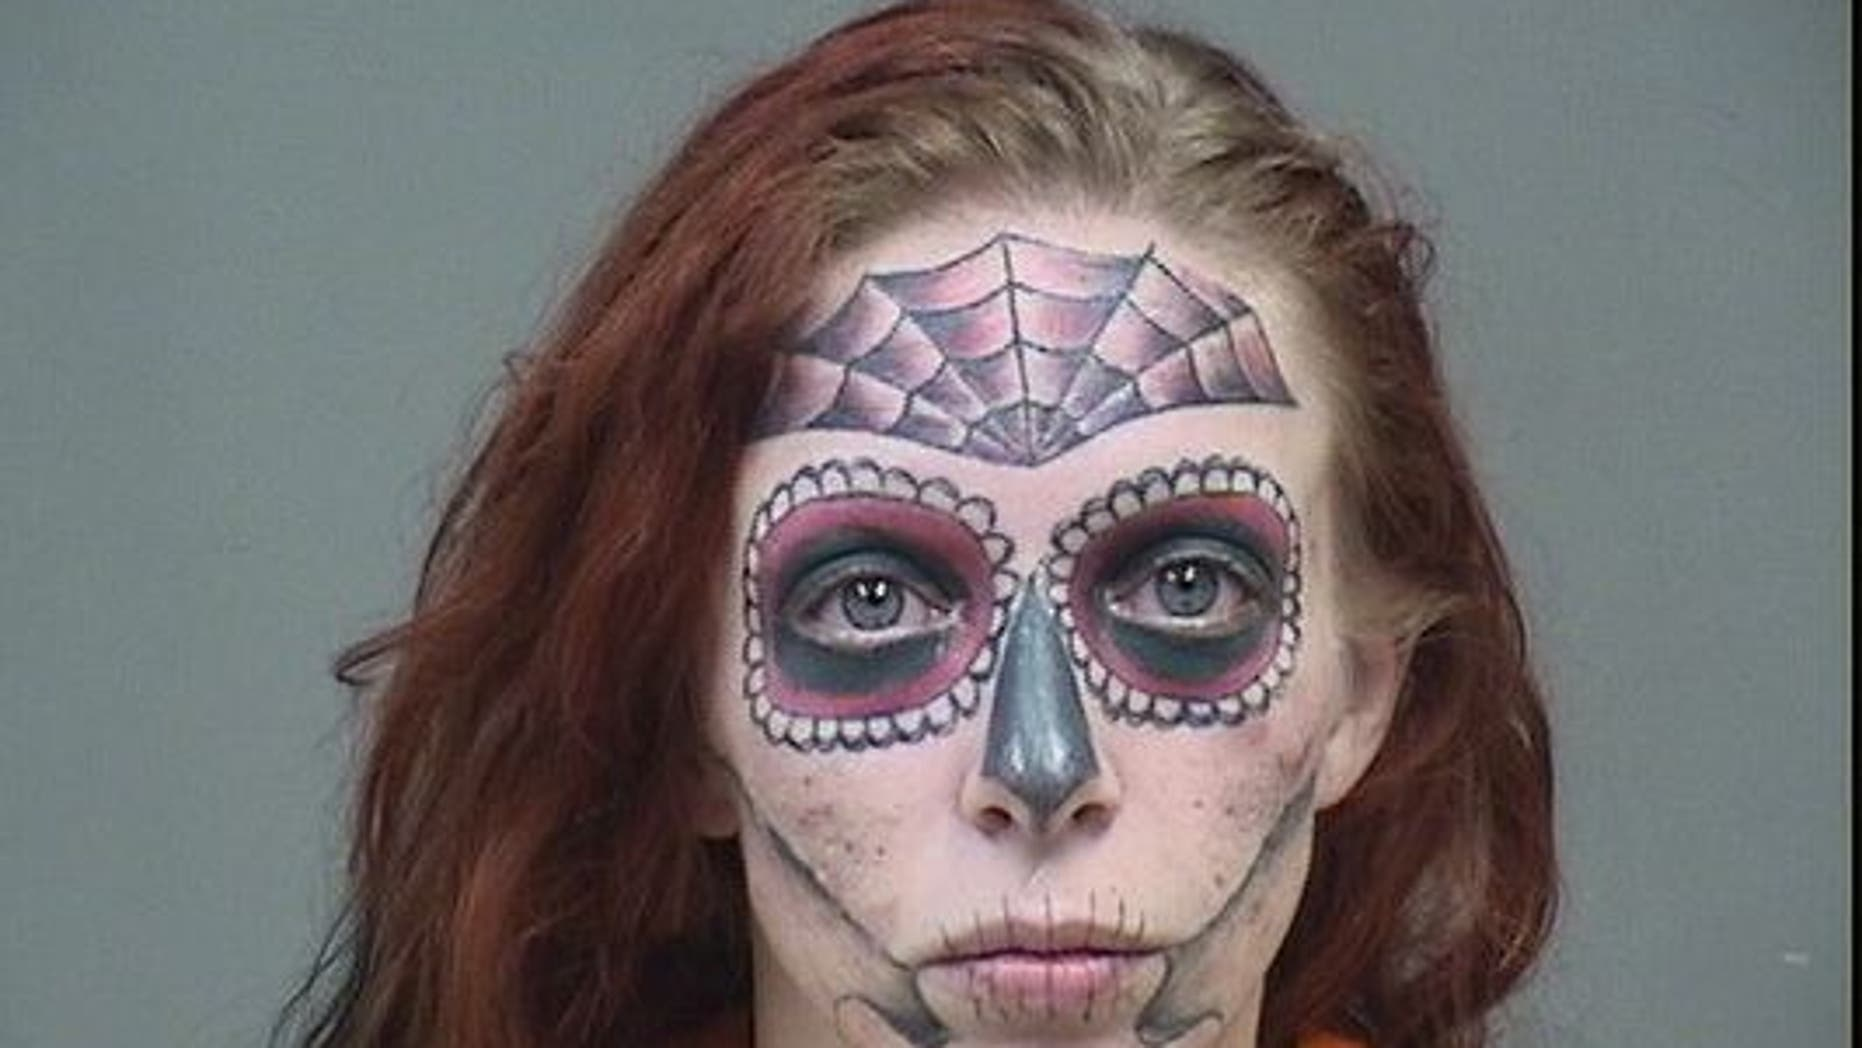 This is reportedly not the Ohio woman's first arrest.